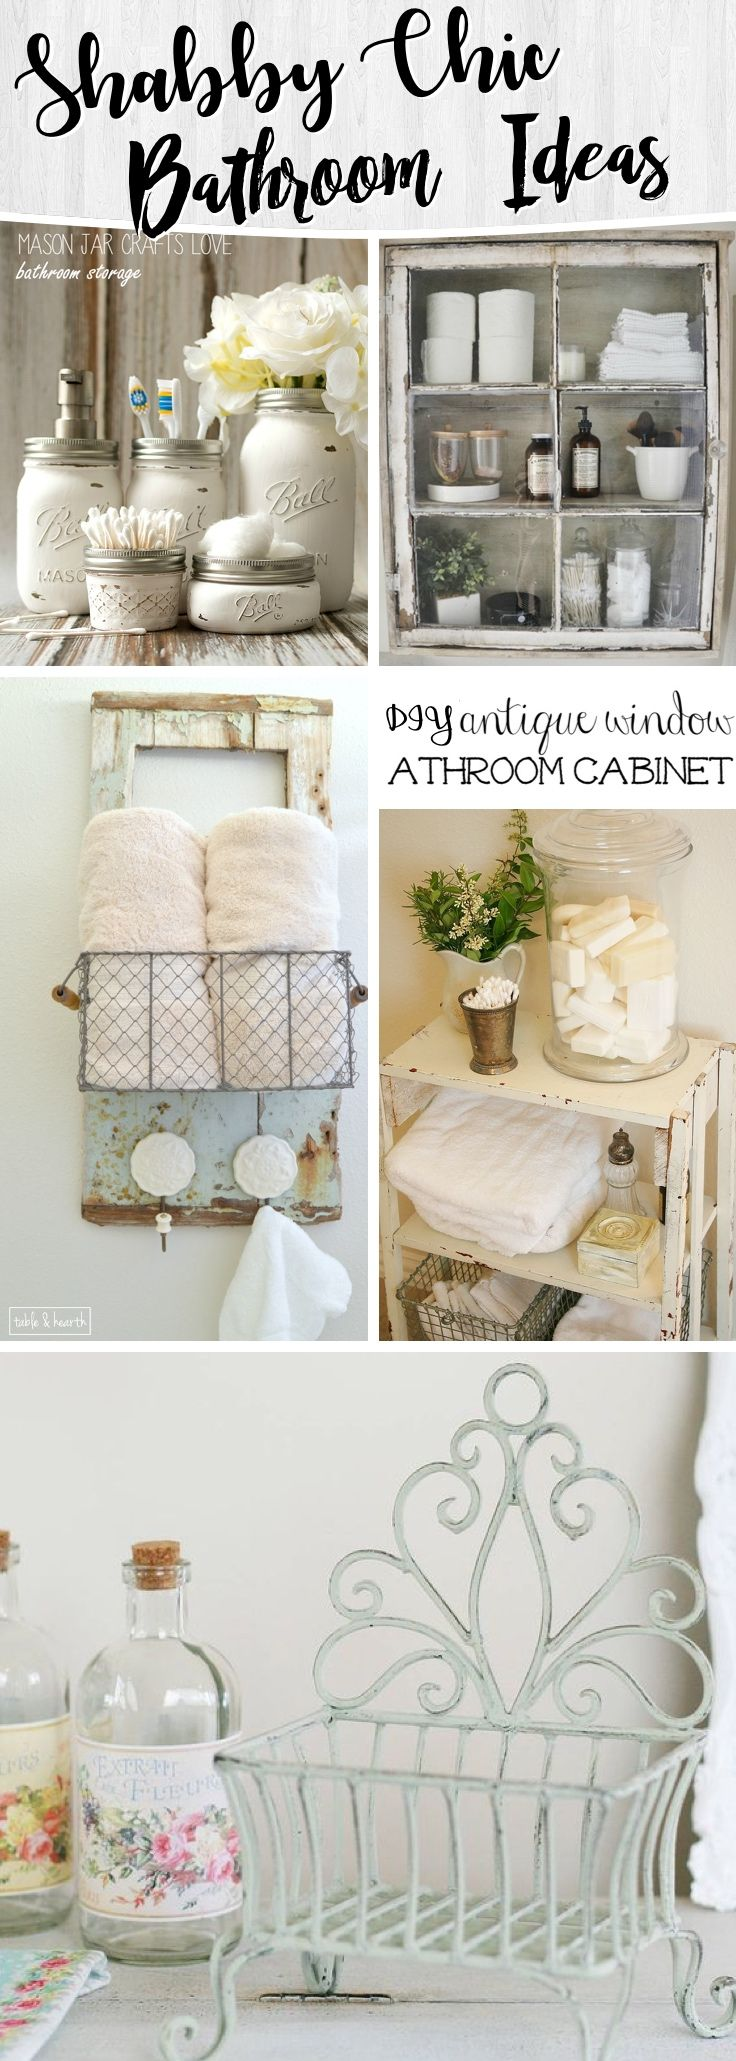 Diy shabby chic home decor - Find This Pin And More On Diy Items 15 Shabby Chic